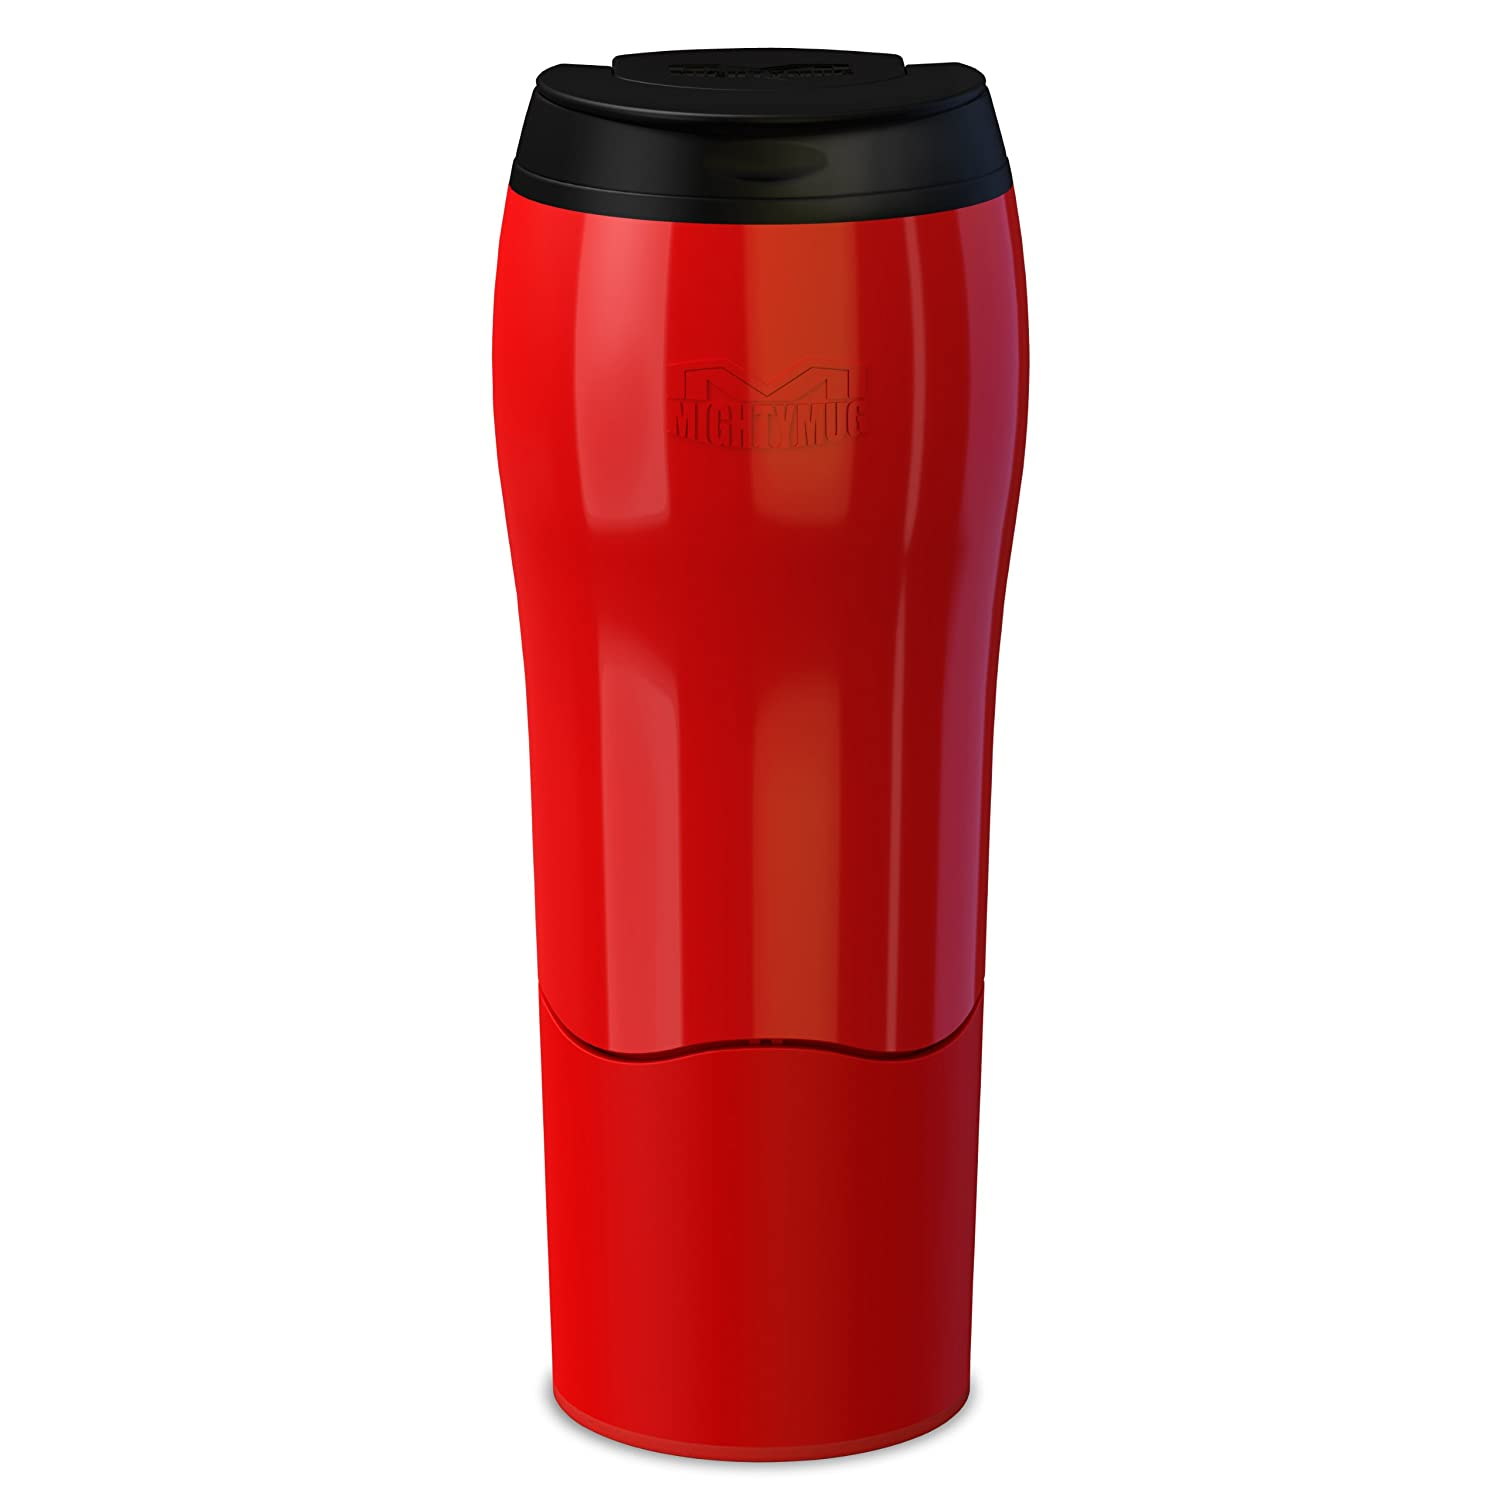 Mighty Mug Go - The Travel Mug That Won't Fall Over (0.47 Litre), Red Dexam 17920225